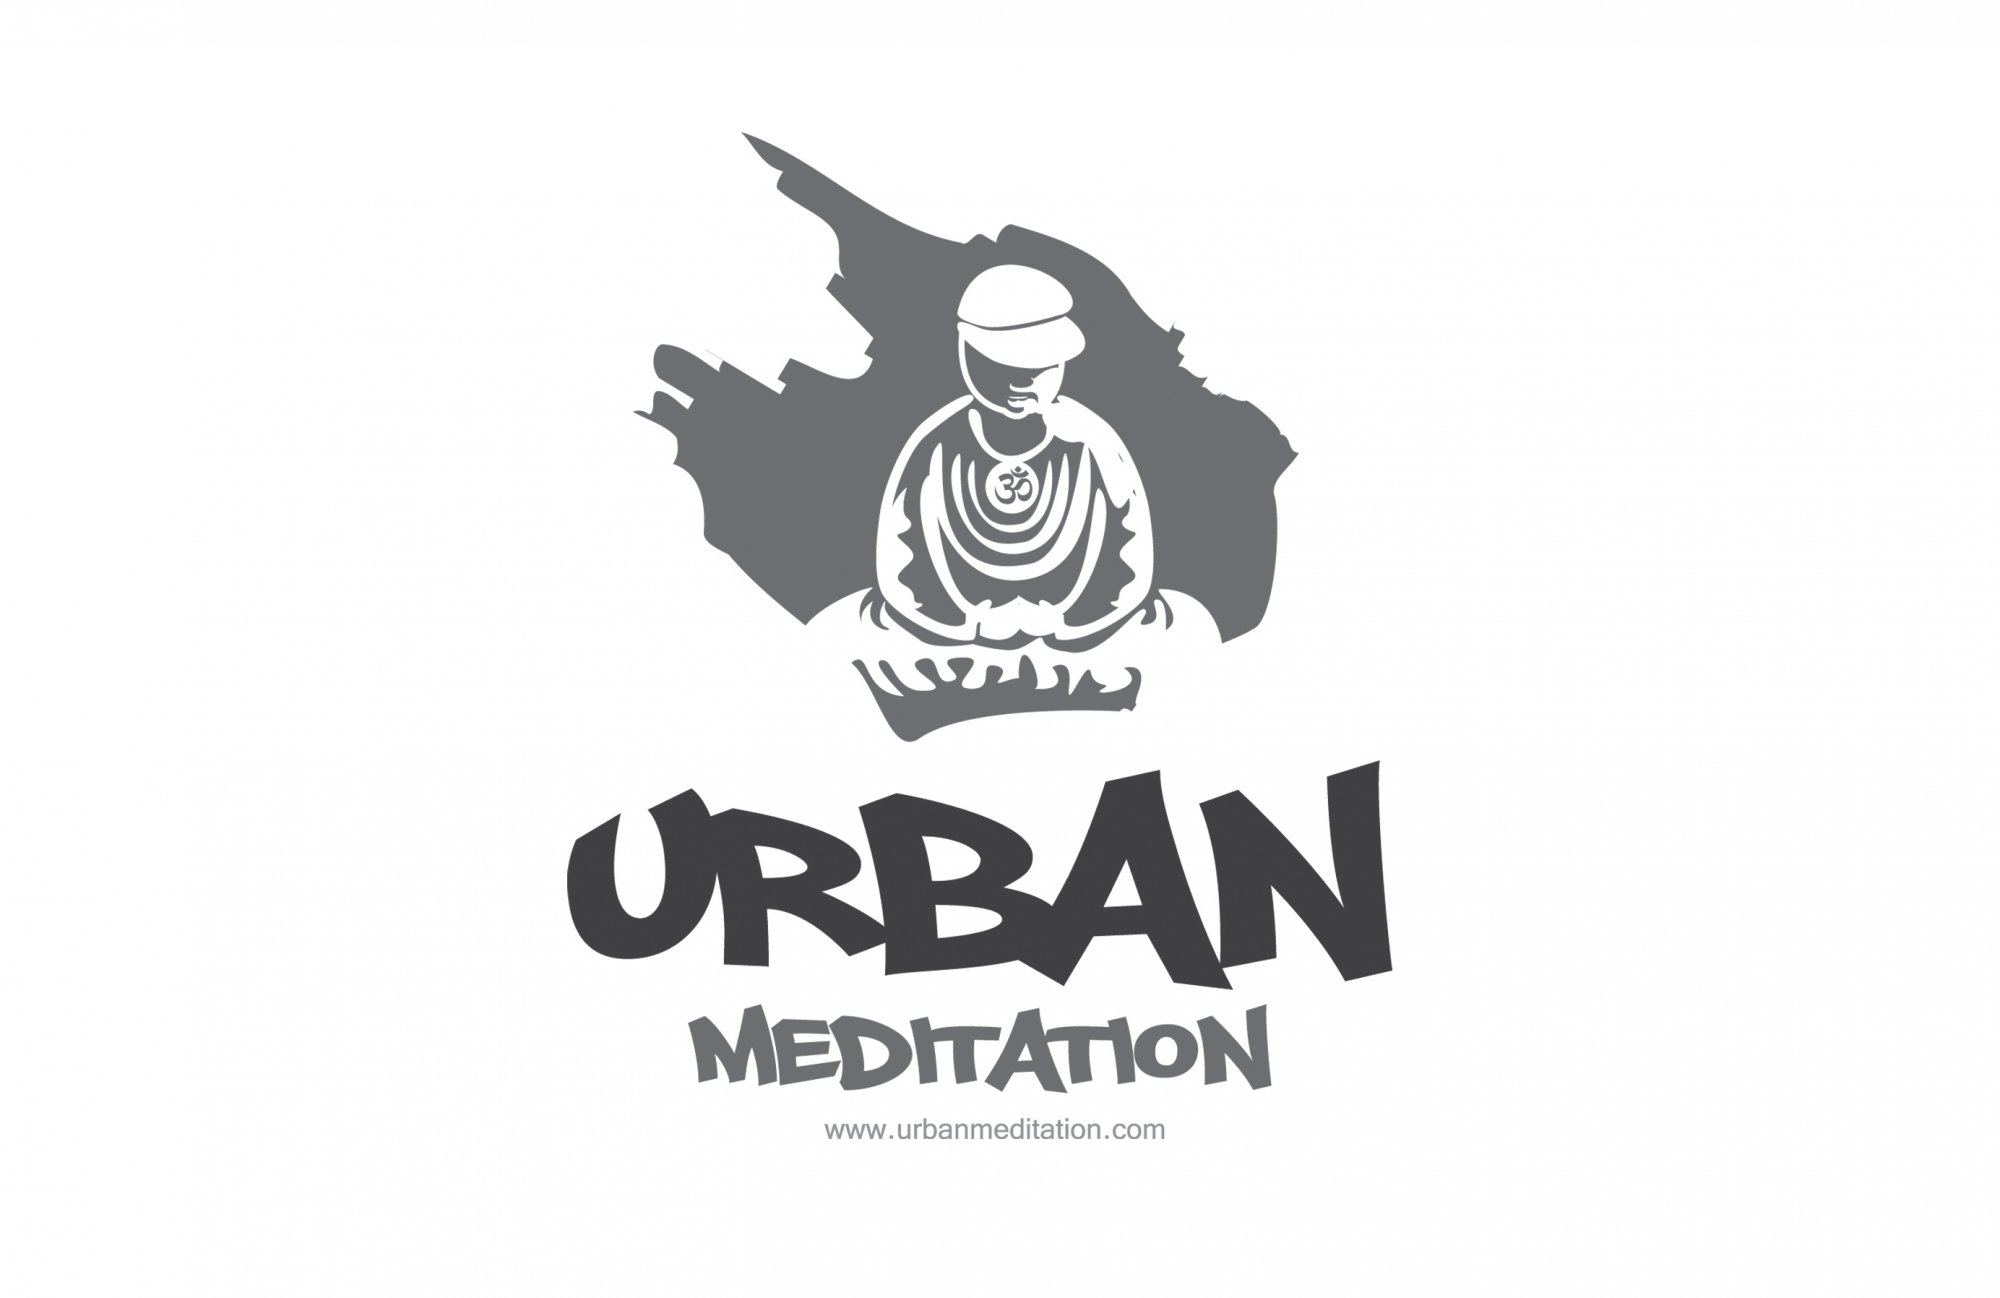 urban meditation brands of the world download vector logos and